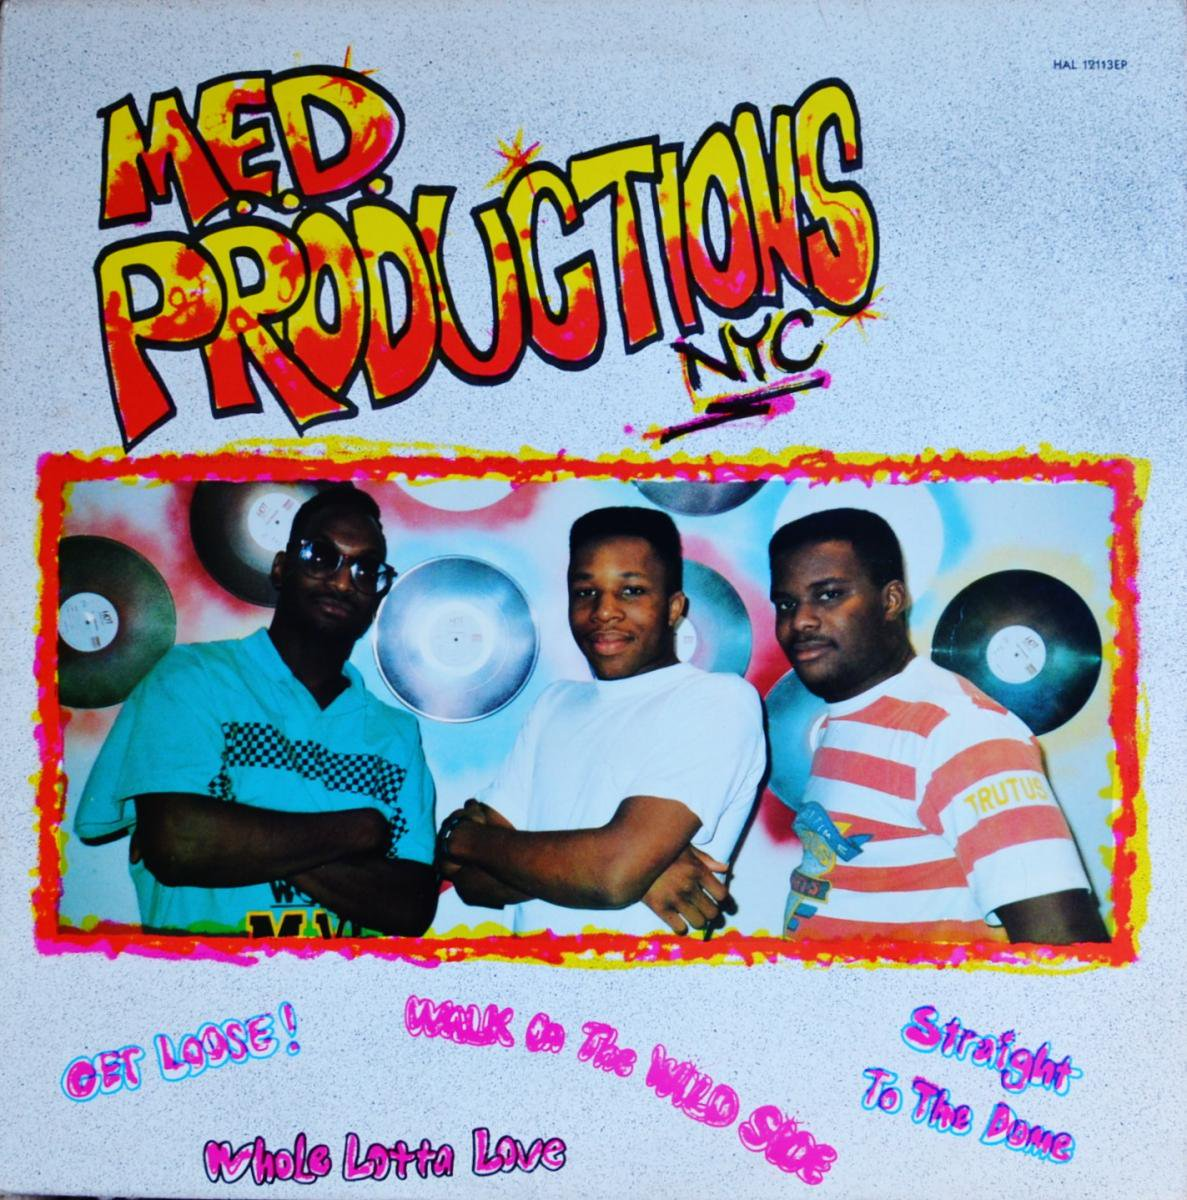 M.E.D.PRODUCTIONS,NYC / GET LOOSE (12